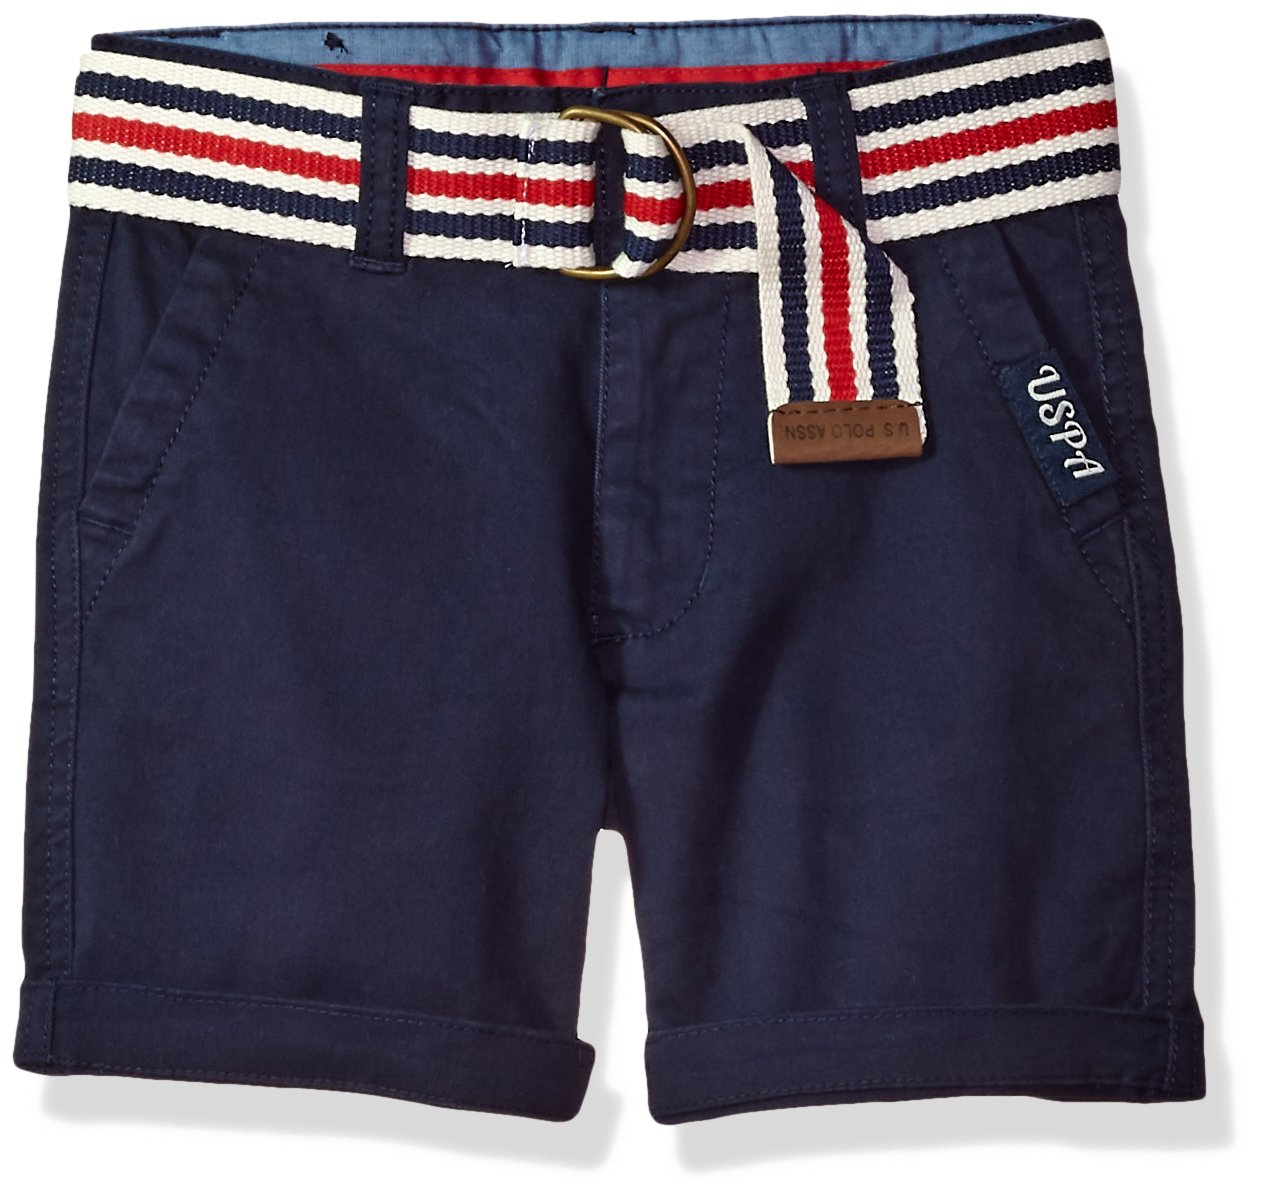 U.S. Polo Assn. Toddler Boys' Short, Large Roll up Cuff Classic Navy, 3T